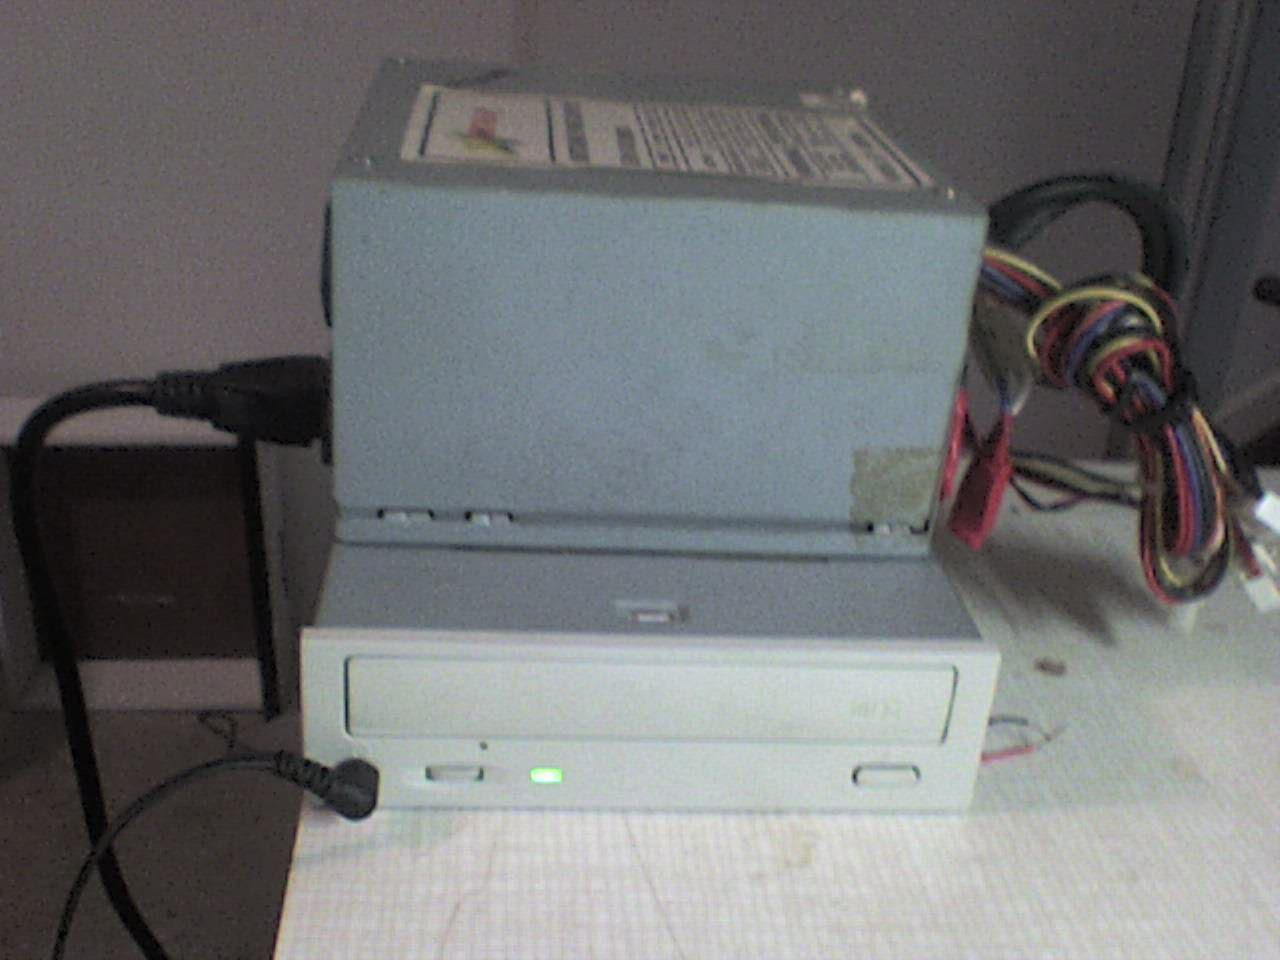 Add a play/skip button to your standalone CD-ROM Drive